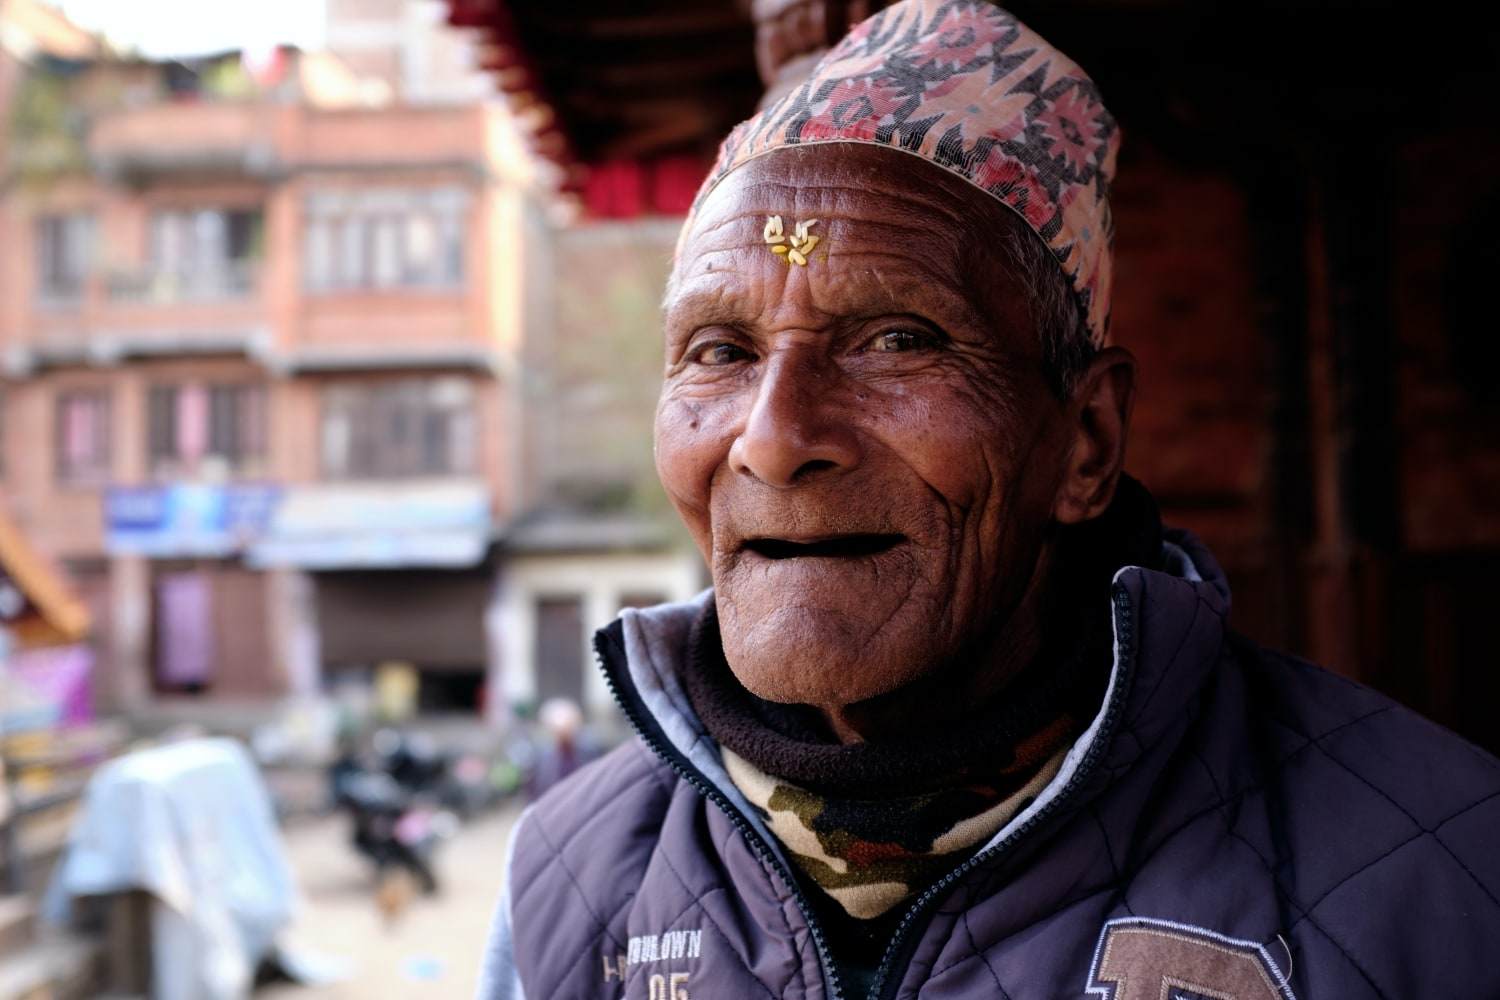 An old man wearing Dhaka topi smiles at camera